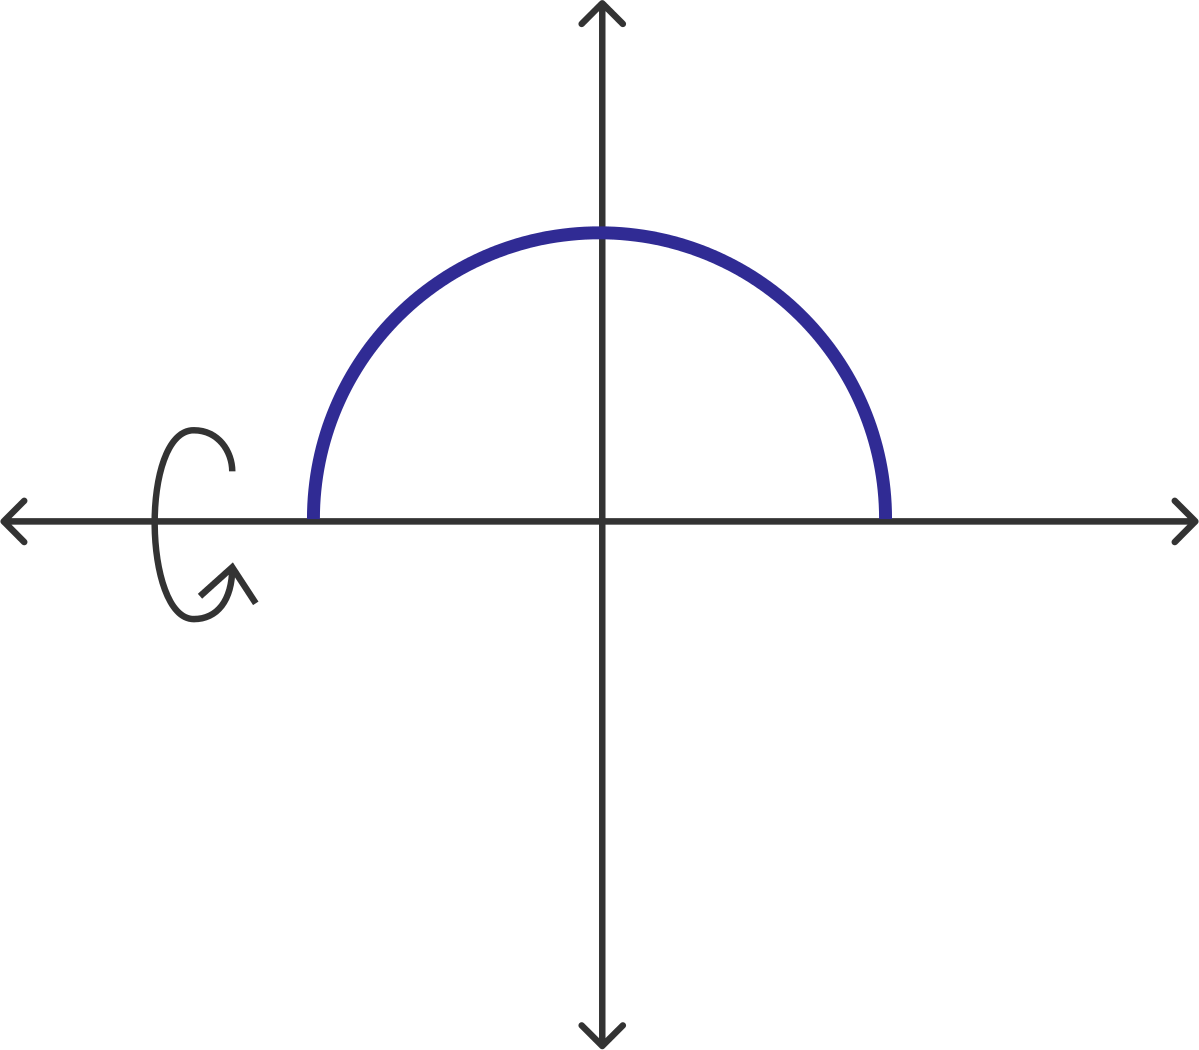 We Can Obtain A Sphere By Revolving Half A Circle About The Xaxis This  Circle Can Be Parameterized As X(t)=rcos(t) And Y(t)=rsin(t) For